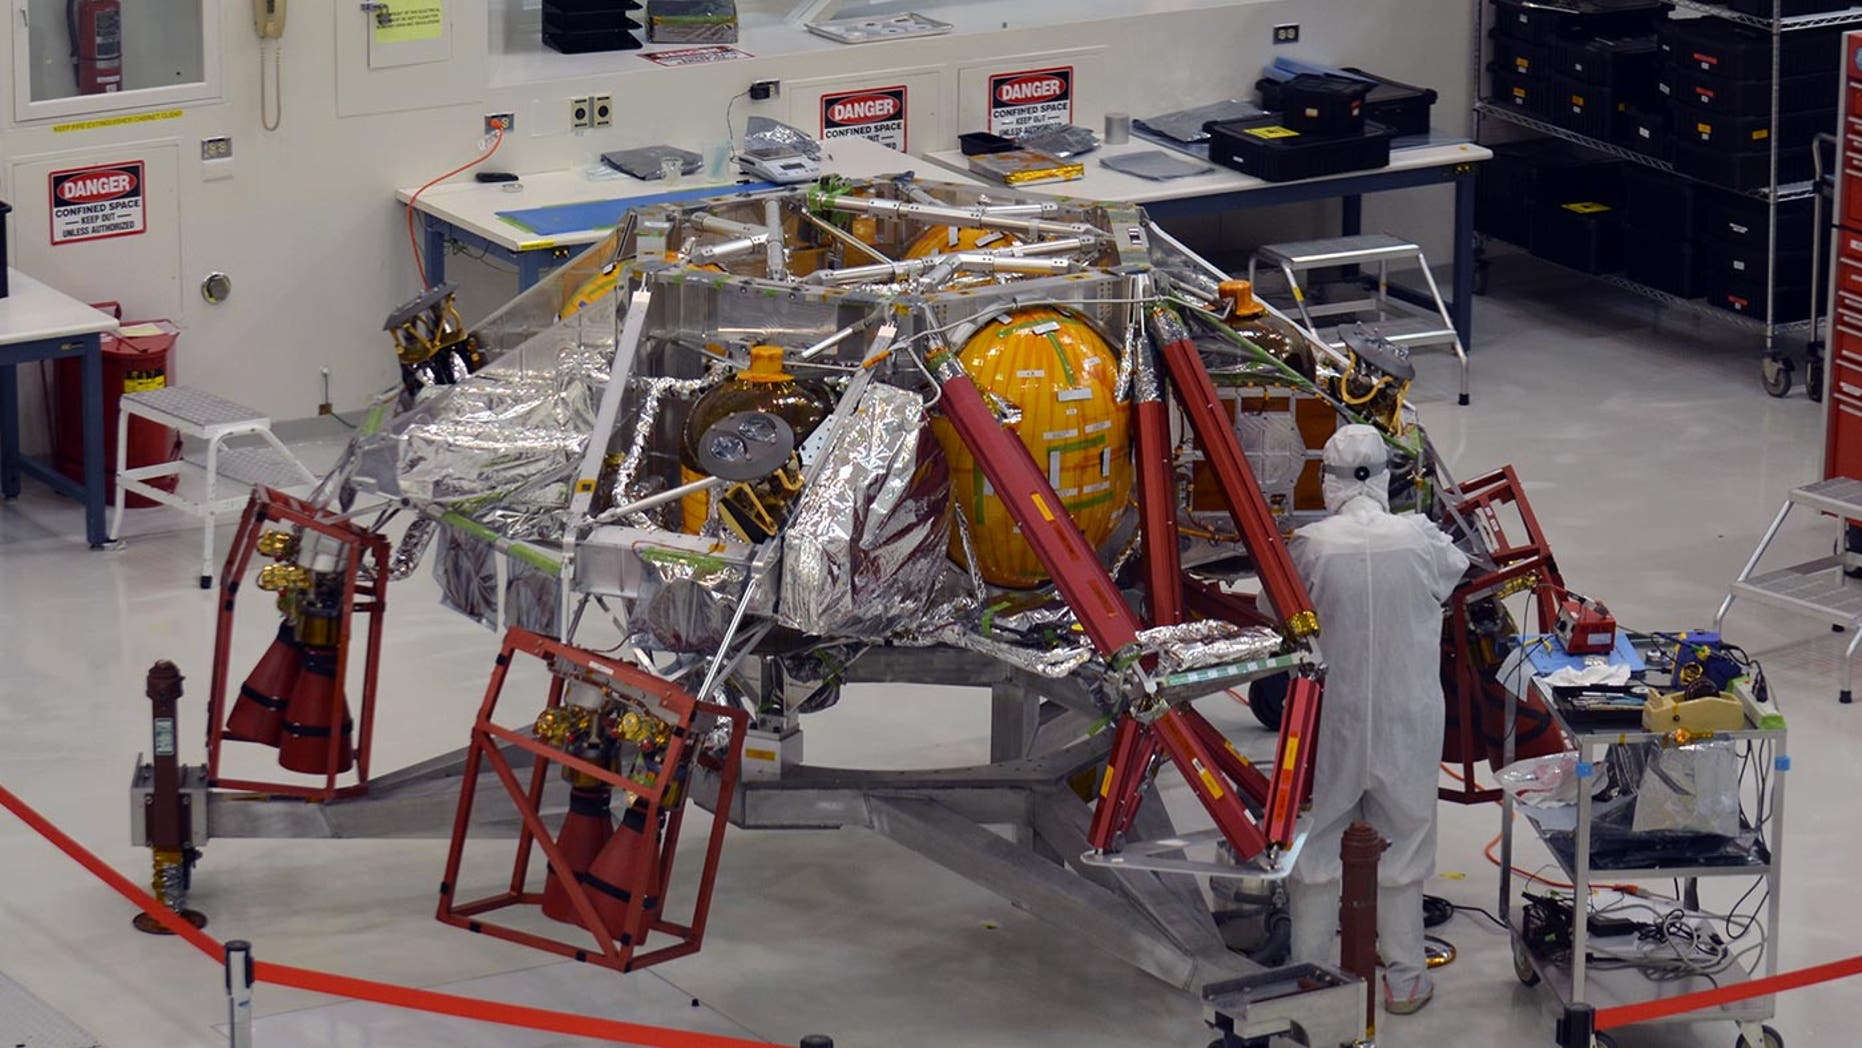 A technician works on the descent stage for NASA's Mars 2020 rover mission inside the Spacecraft Assembly Facility at the agency's Jet Propulsion Laboratory in Pasadena, California. The rover is scheduled to launch toward the Red Planet in July of 2020.